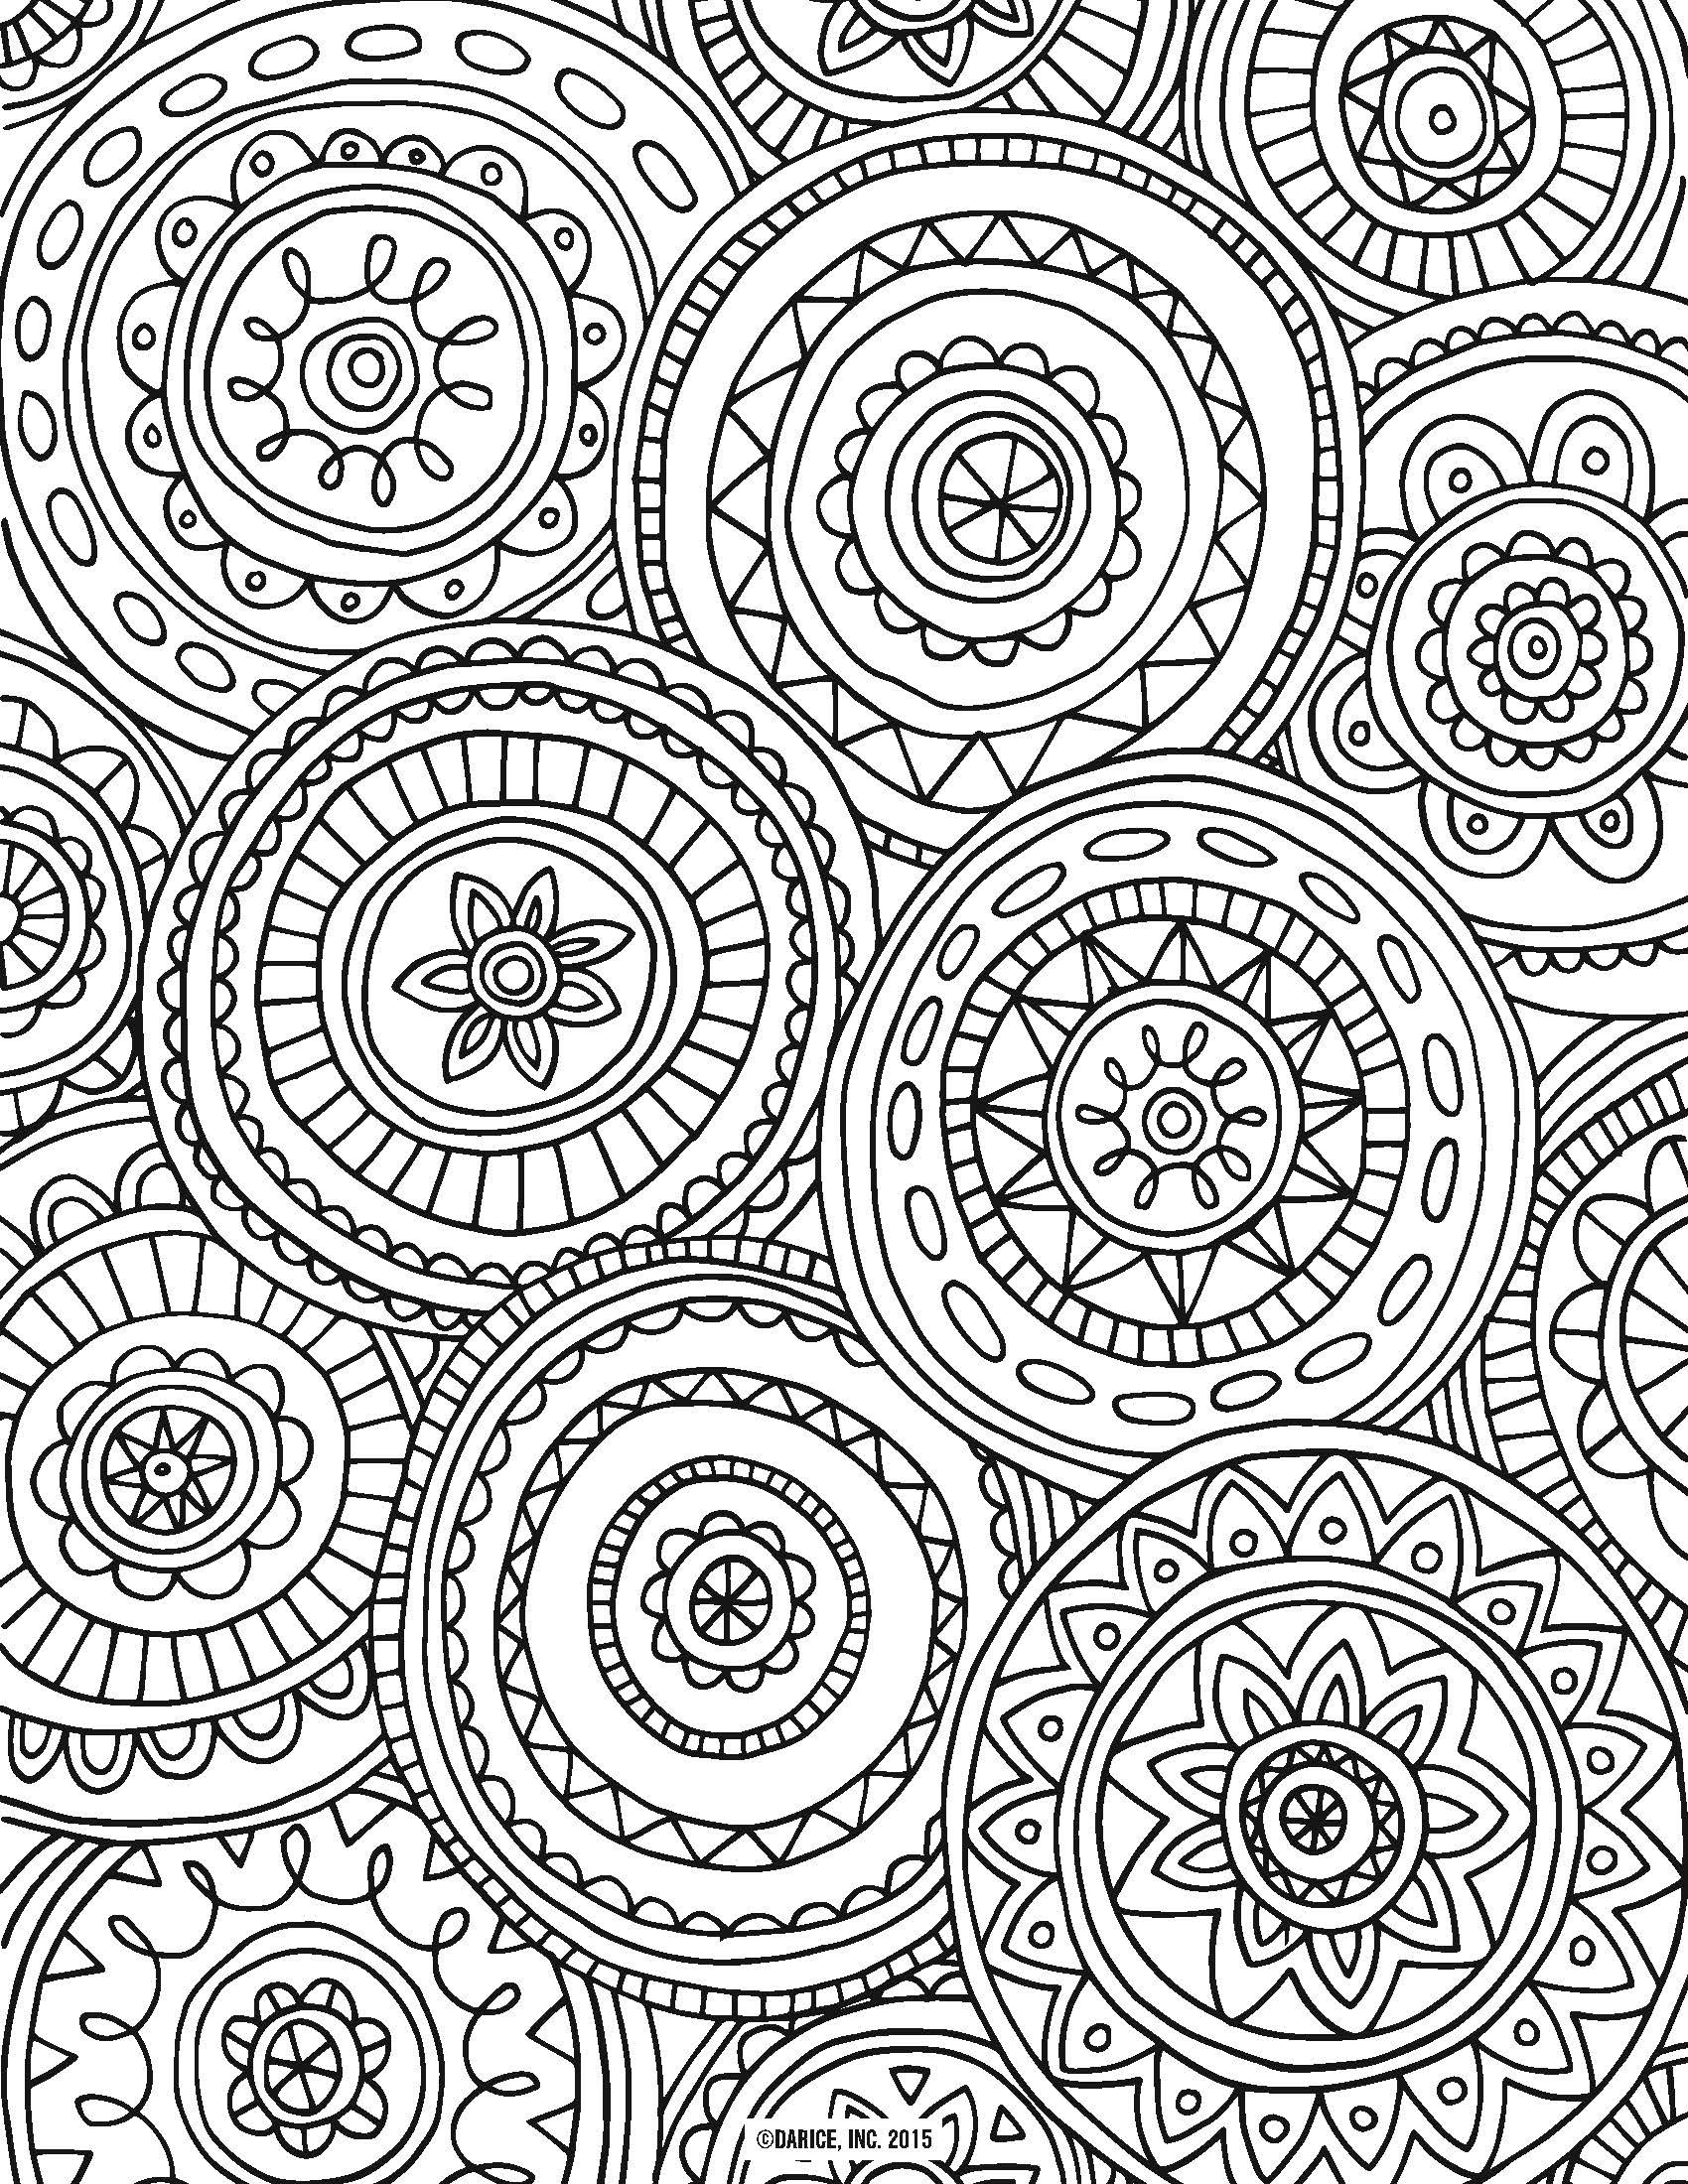 Best ideas about Free Mandala Coloring Pages For Adults . Save or Pin 9 Free Printable Adult Coloring Pages Now.